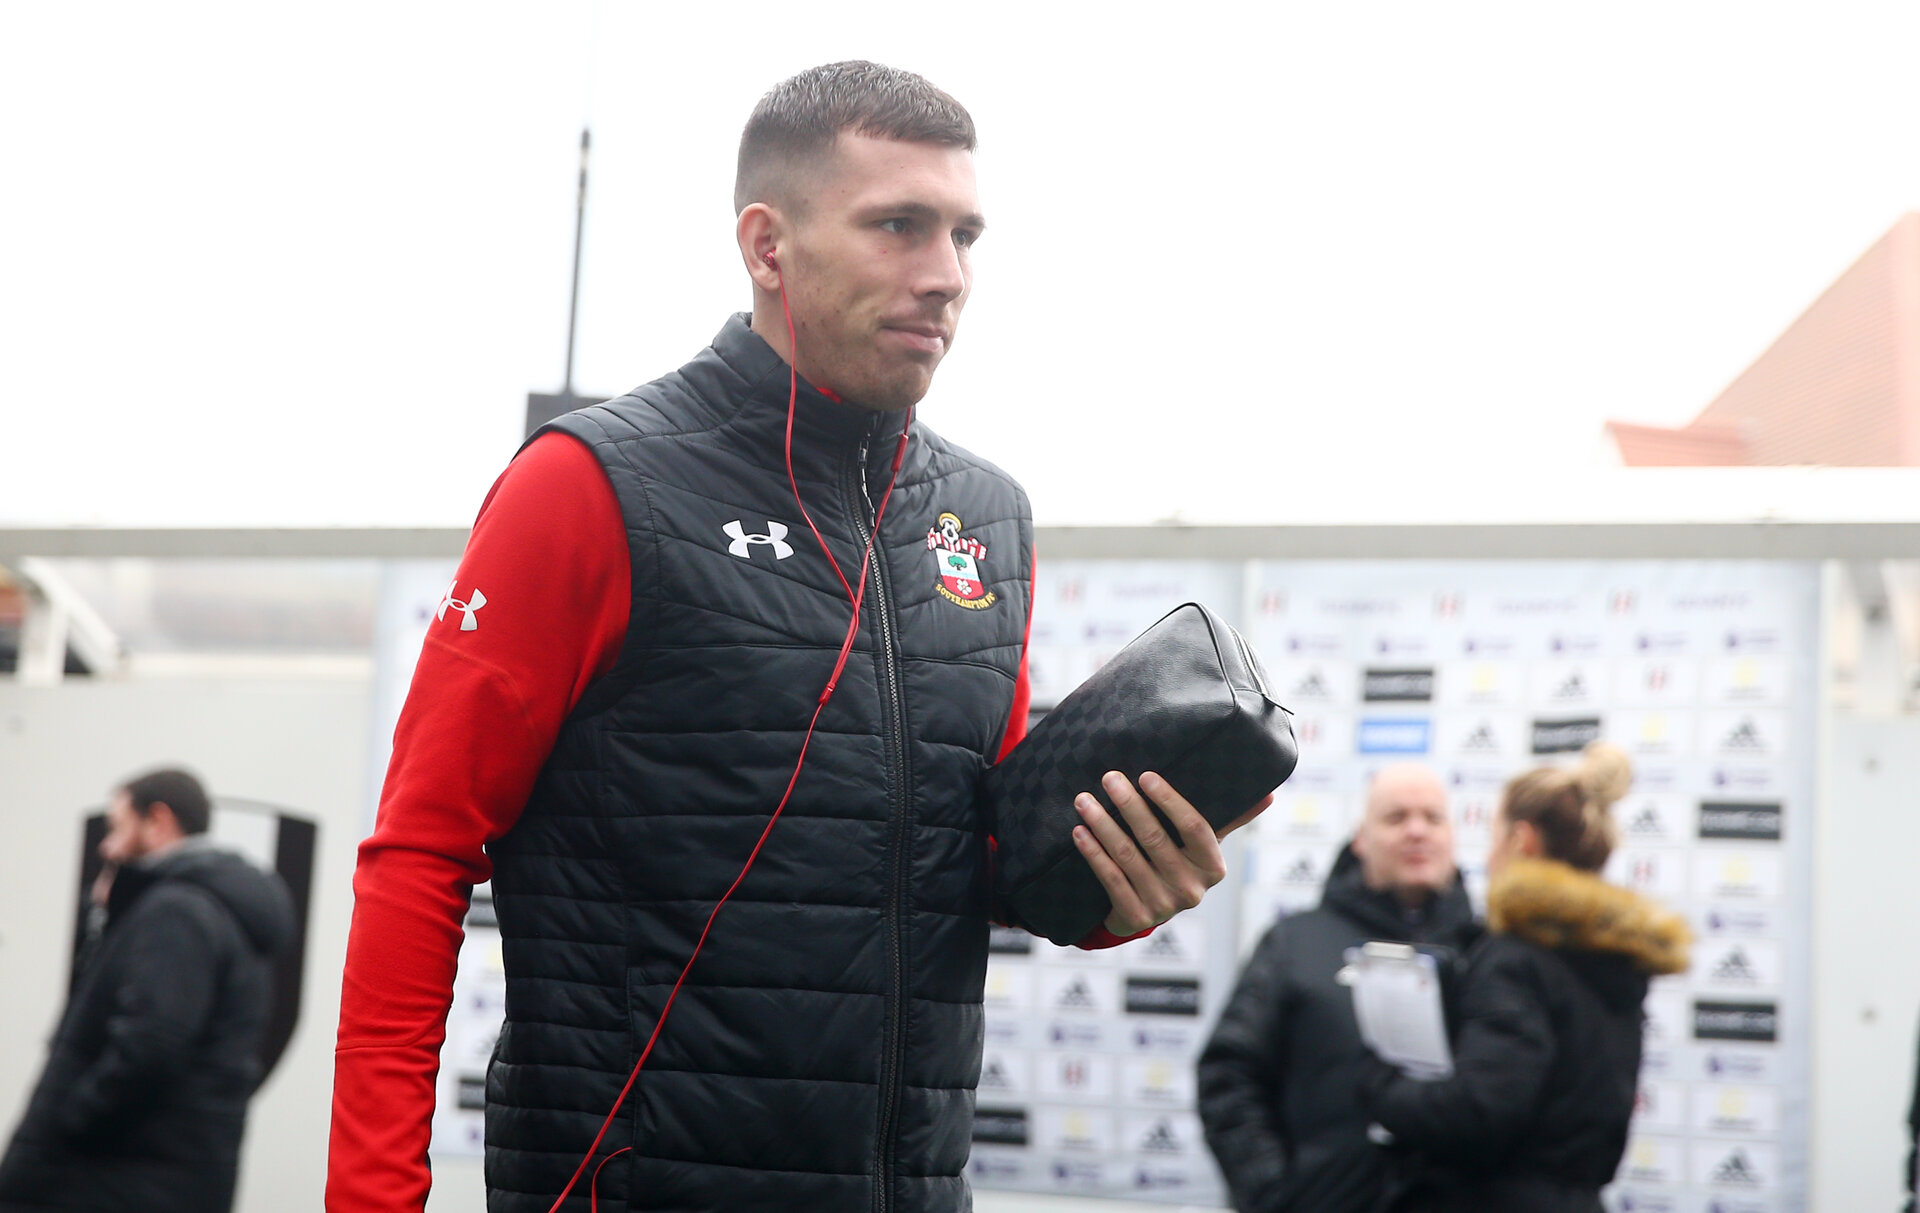 LONDON, ENGLAND - NOVEMBER 24: Pierre-Emile Hojbjerg of Southampton ahead of the Premier League match between Fulham FC and Southampton FC at Craven Cottage on November 24, 2018 in London, United Kingdom. (Photo by Matt Watson/Southampton FC via Getty Images)